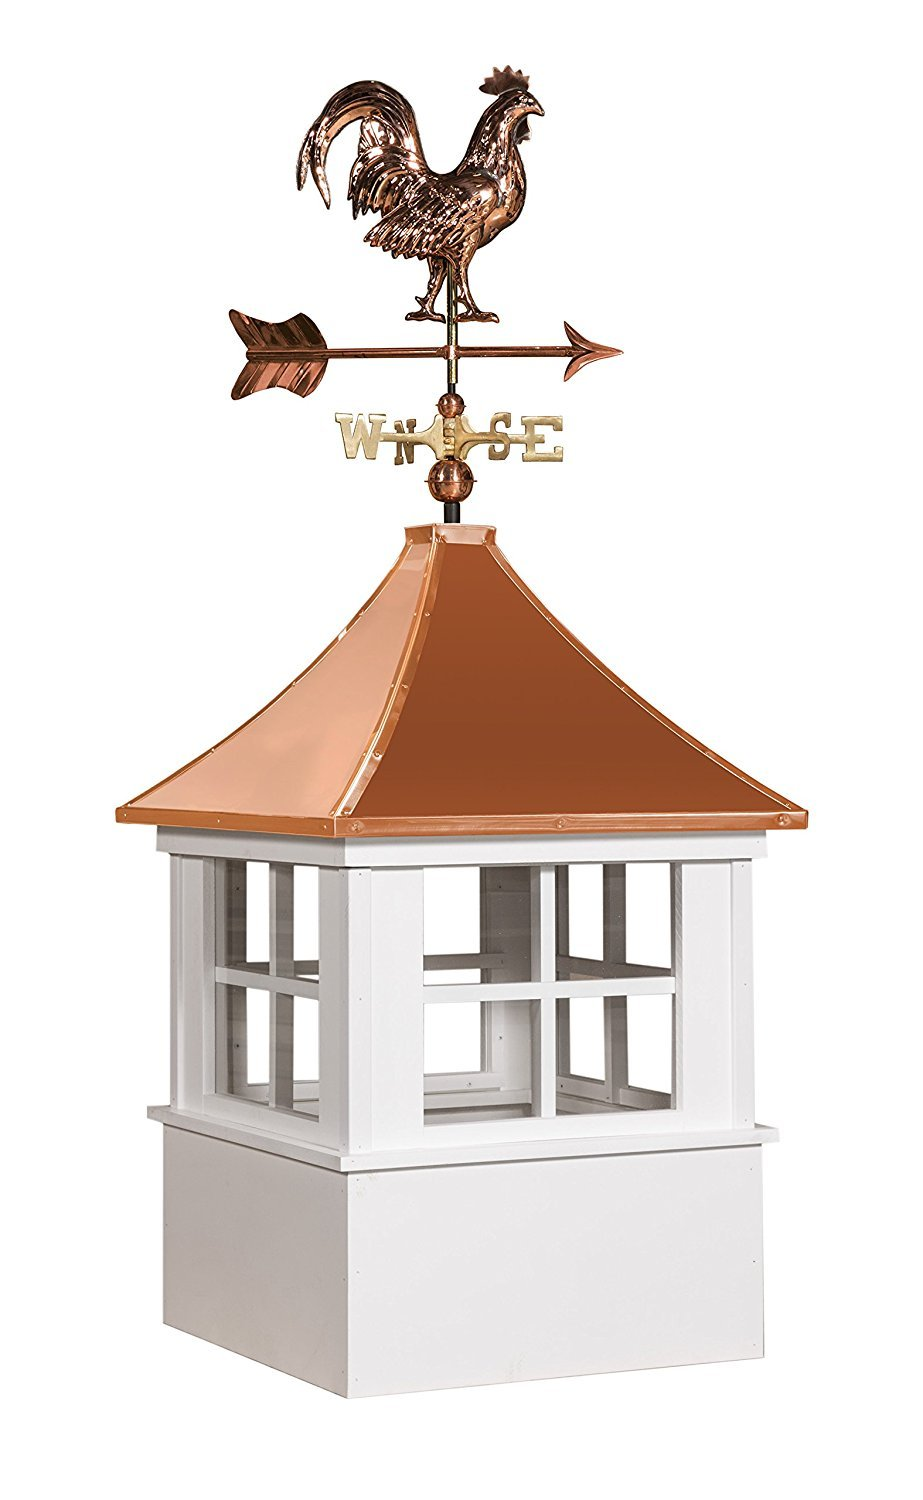 East Coast Weathervanes and Cupolas Vinyl Deerfield Cupola With Rooster Weathervane (vinyl, 21 in square x 49 in tall)